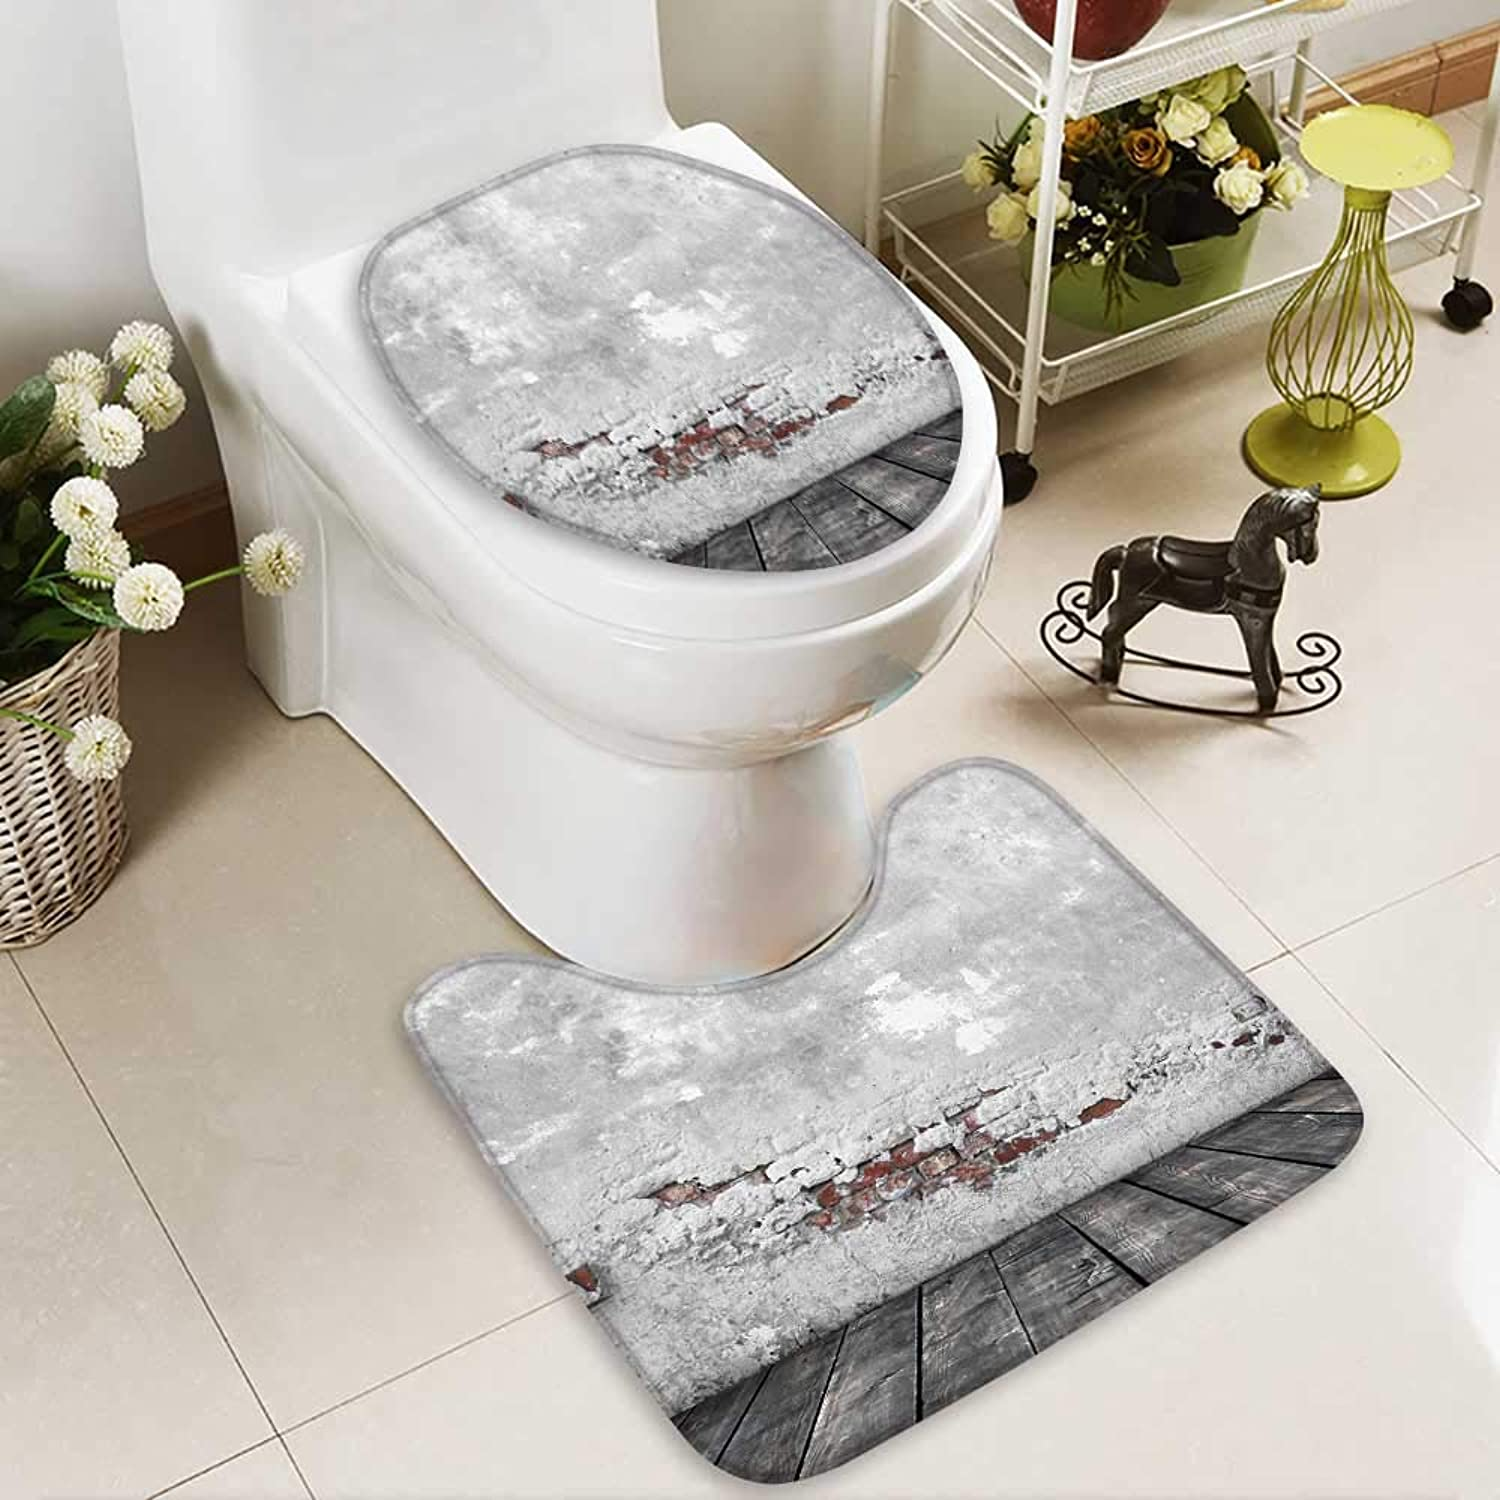 Bathroom Non-Slip Floor Mat Grunge Concrete Wall and Wood Floor with High Absorbency